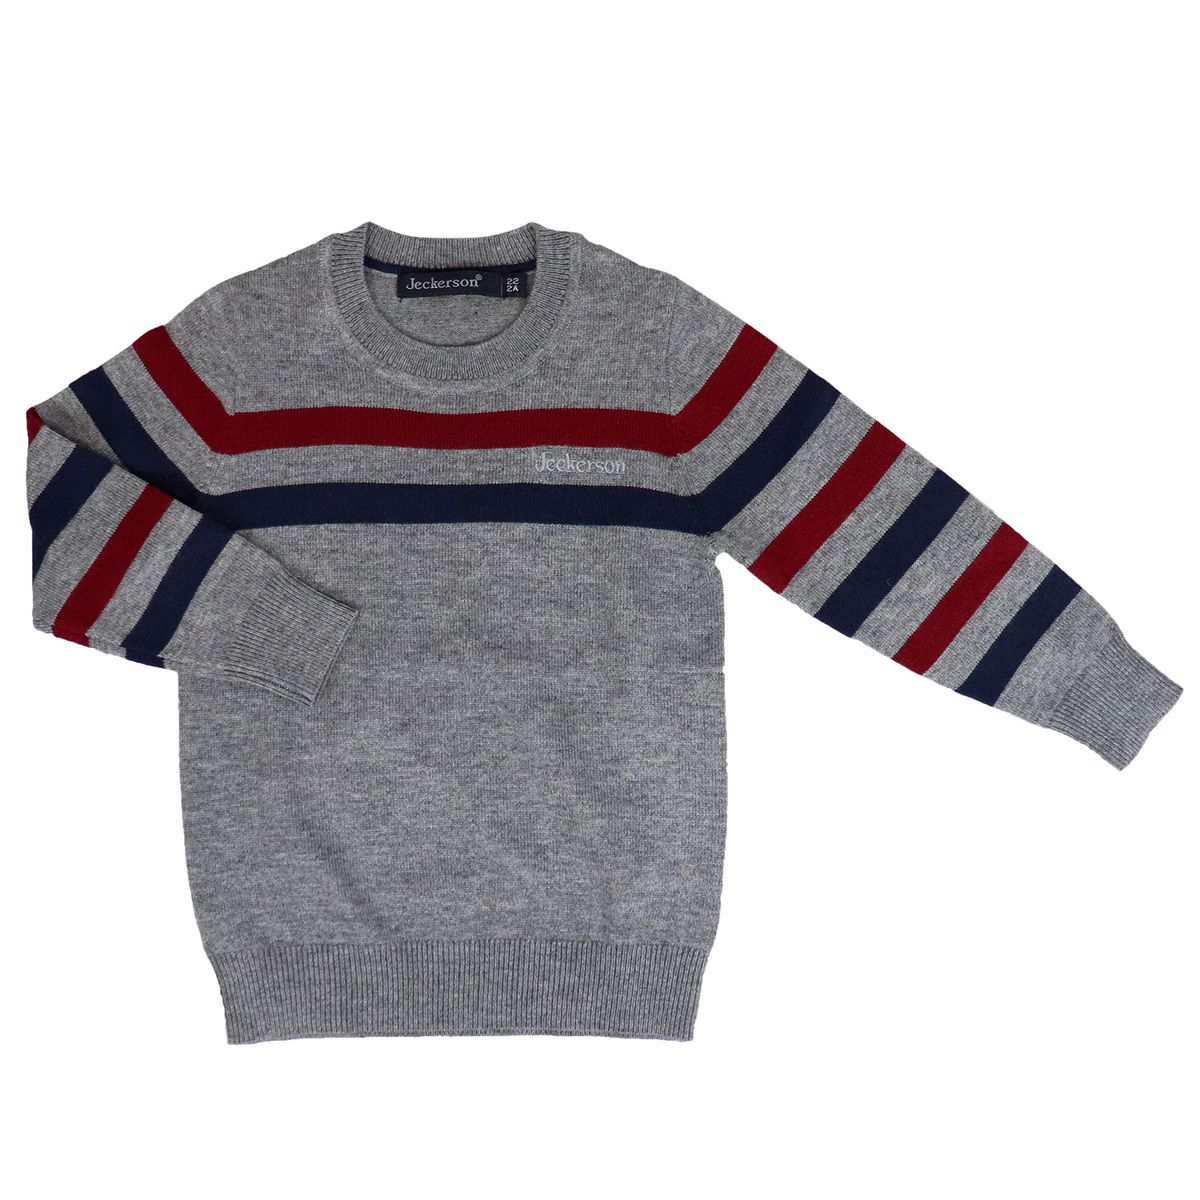 Cashmere blend crew neck sweater with contrasting stripes Gray / burgundy Jeckerson